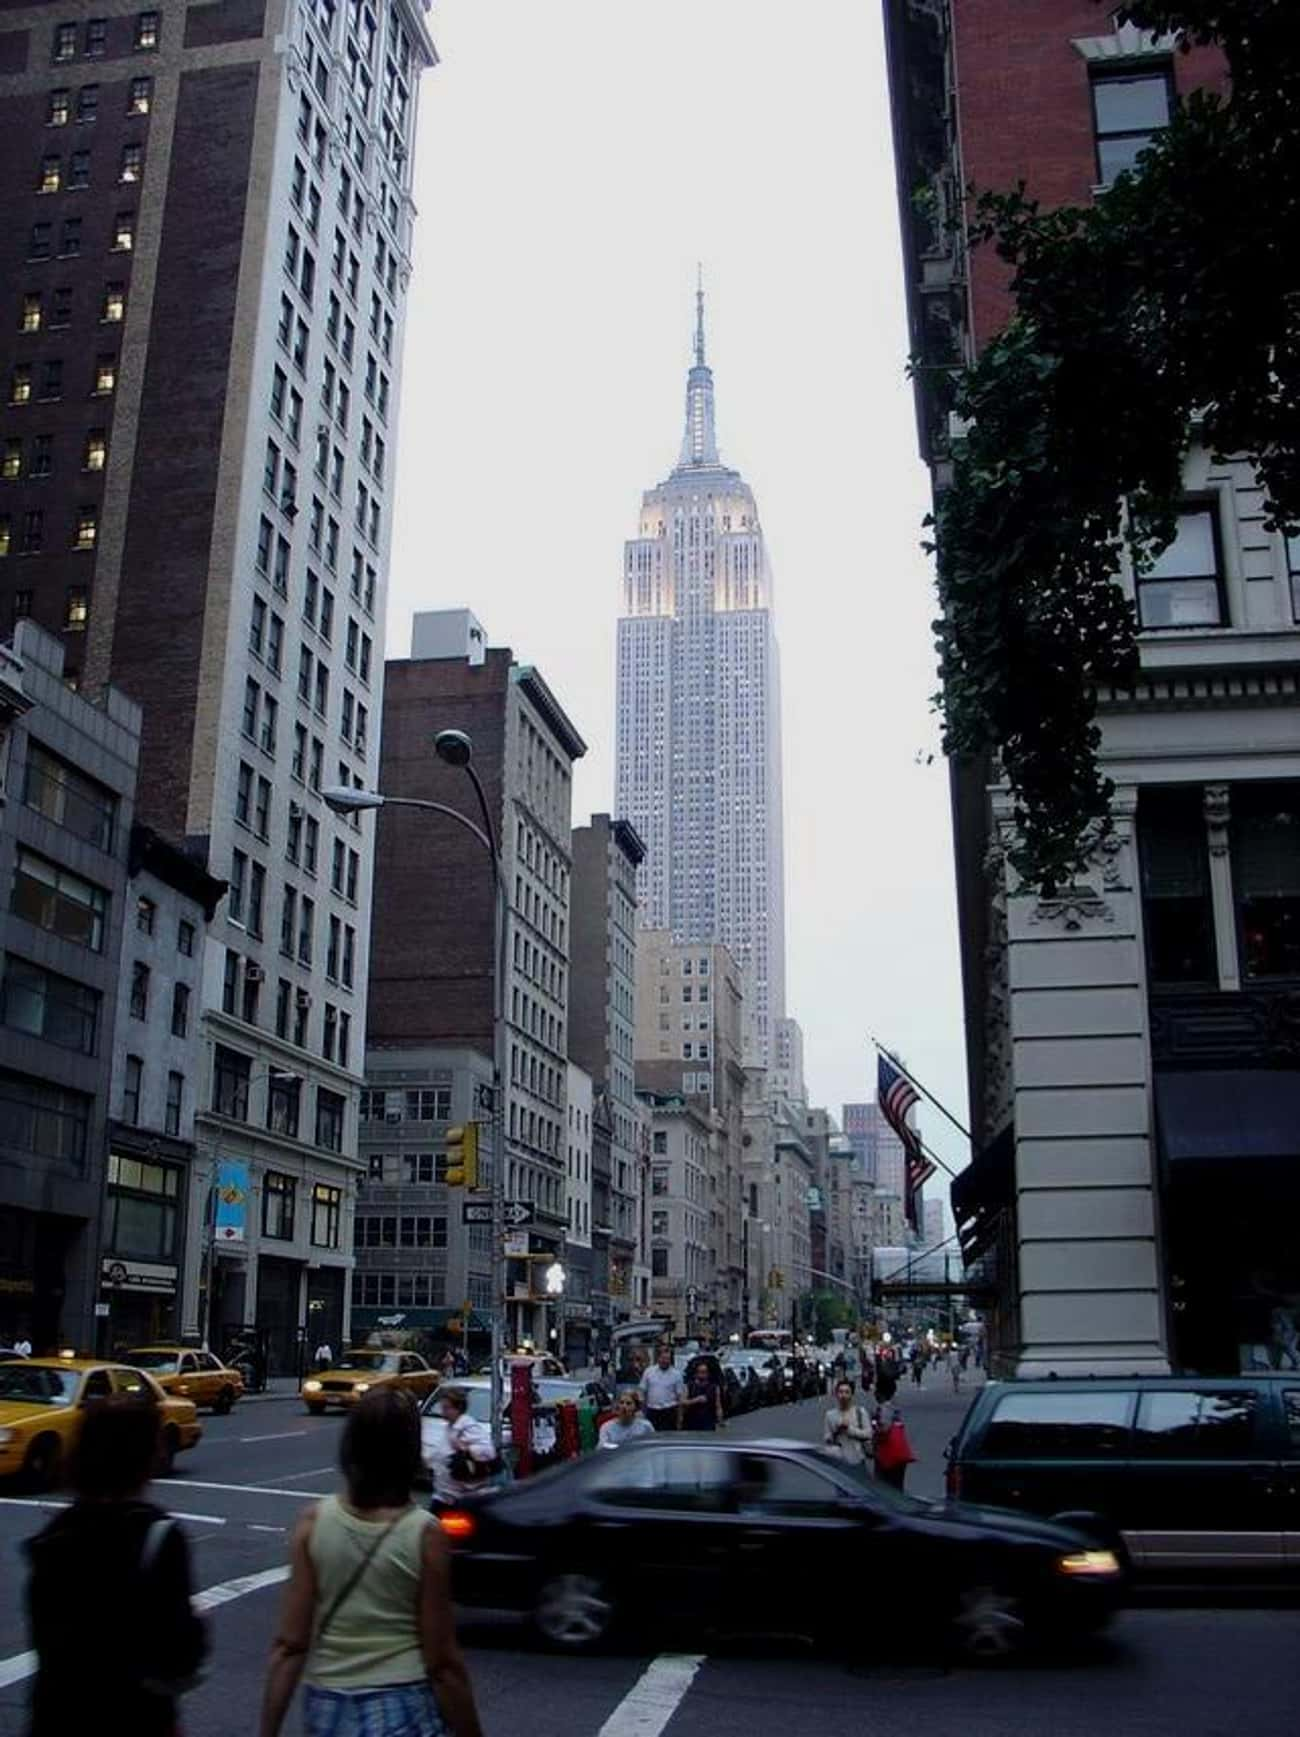 Empire State Building is listed (or ranked) 2 on the list The Top 25 Tallest Buildings in New York